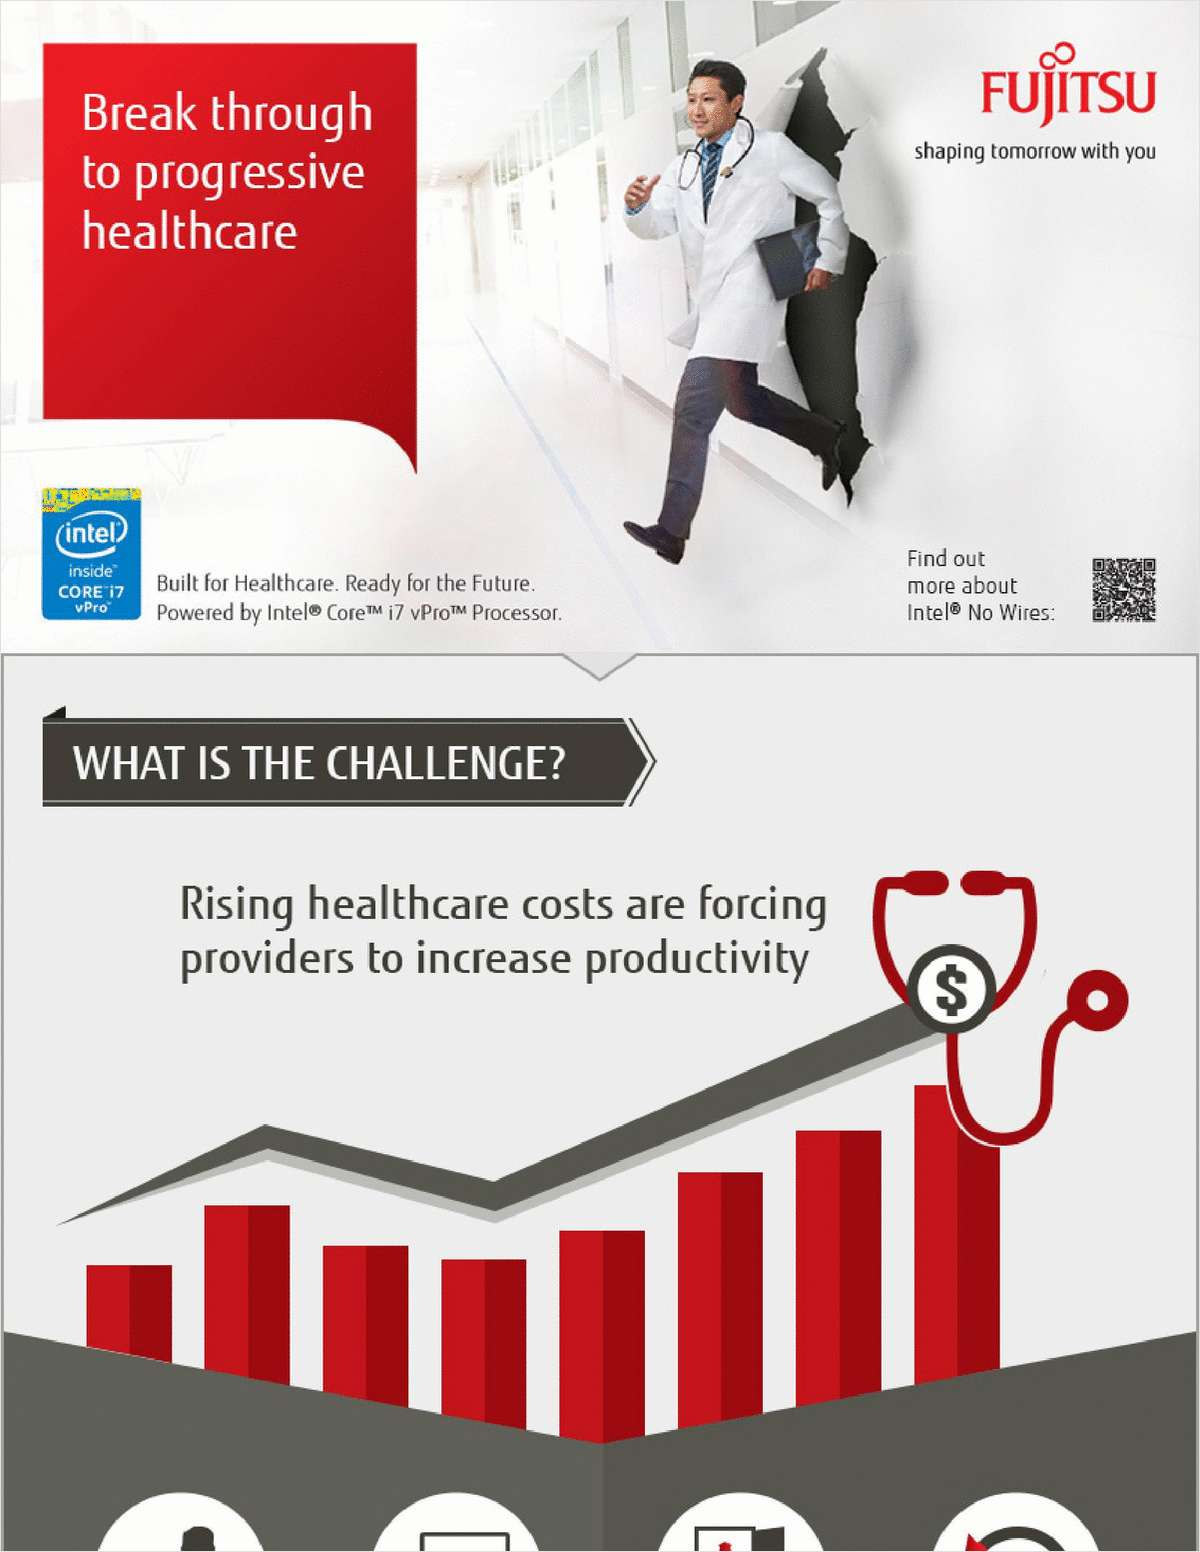 Combat Rising Healthcare Costs by Increasing Productivity